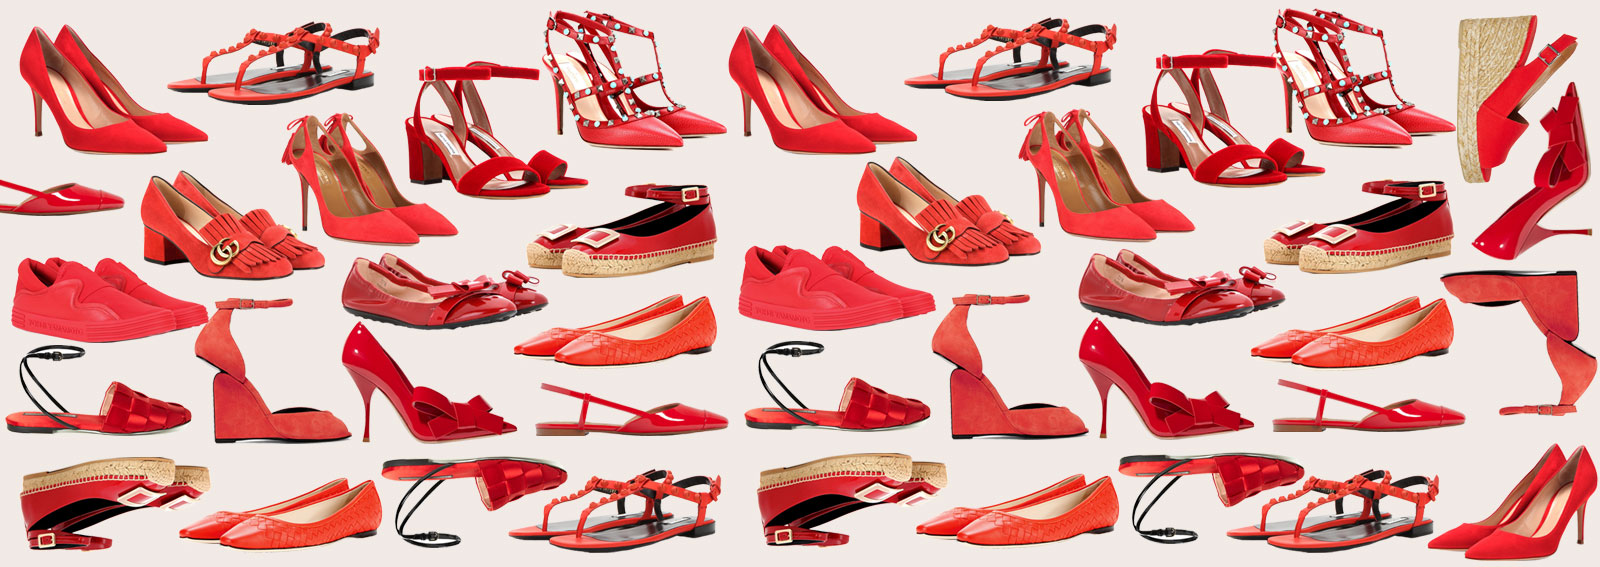 cover something red le scarpe rosse dekstop